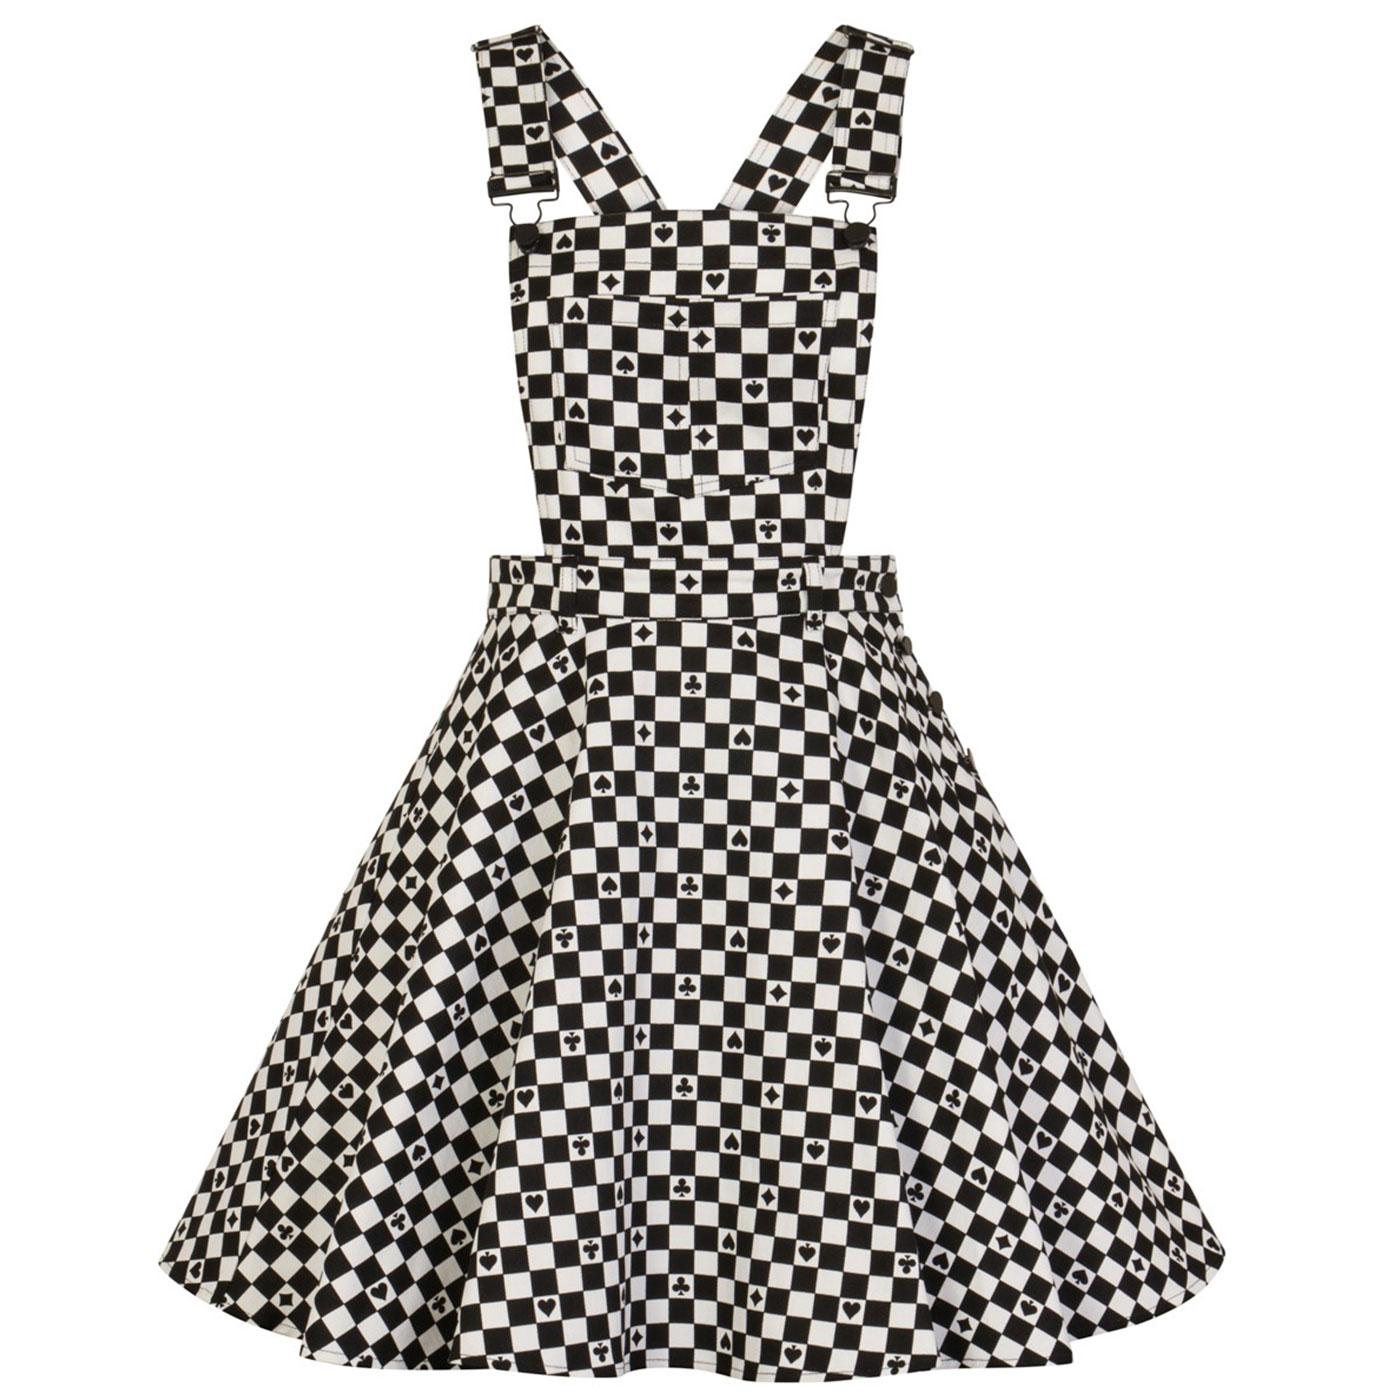 HELL BUNNY Pokerface Retro 60s Mod Pinafore Dress